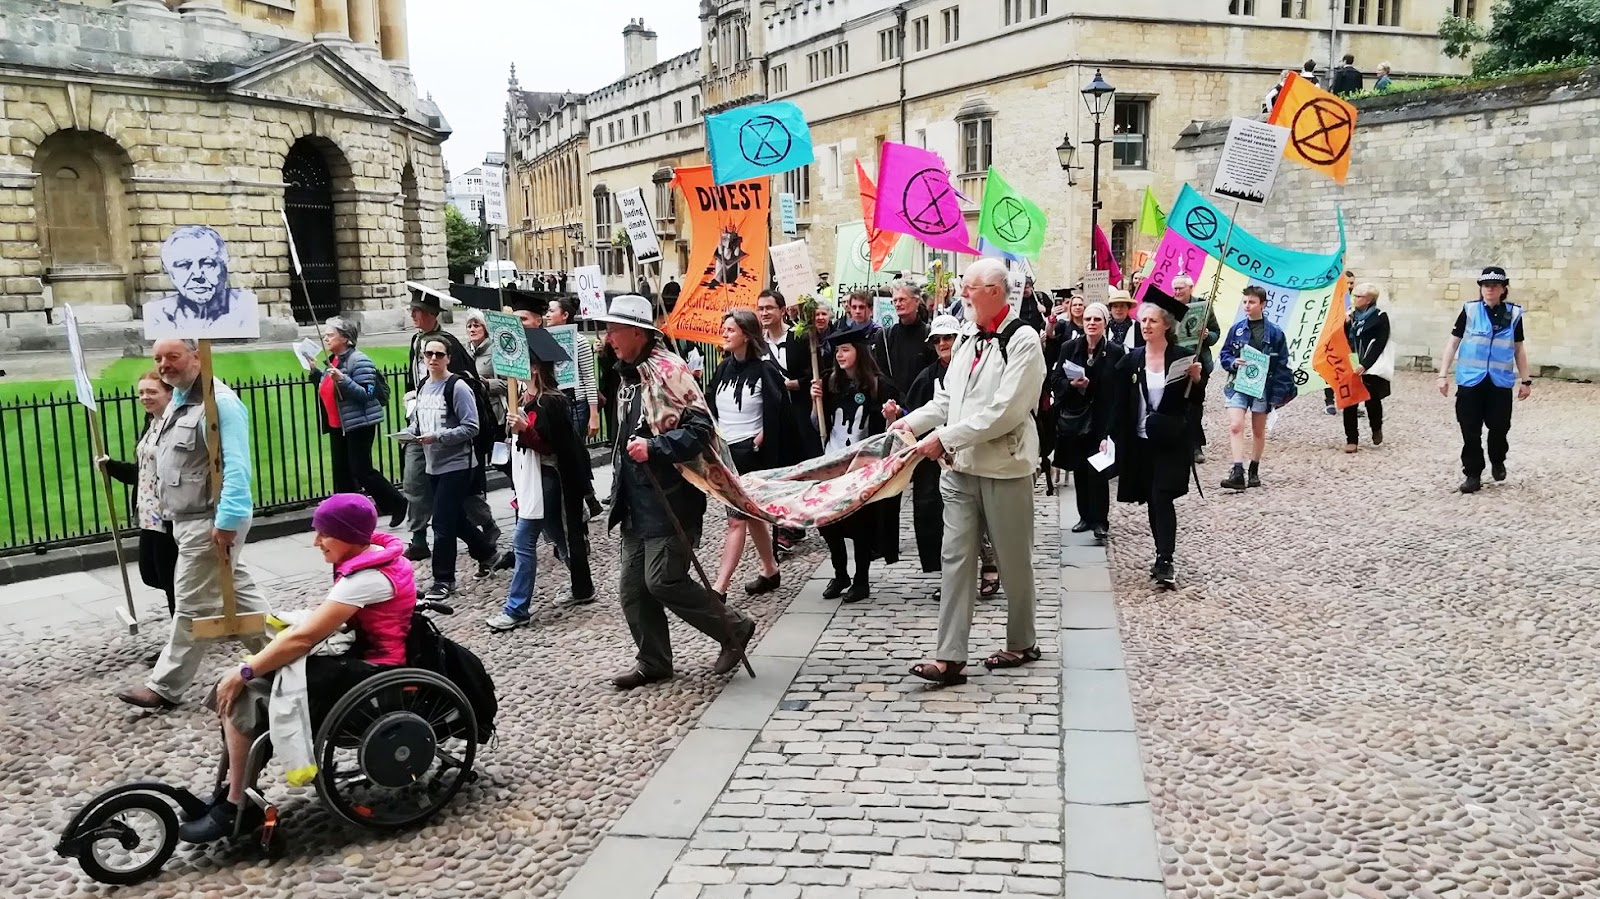 XR rebels processing around Radcliffe Camera, some with sub-fusc, some with XR flags.